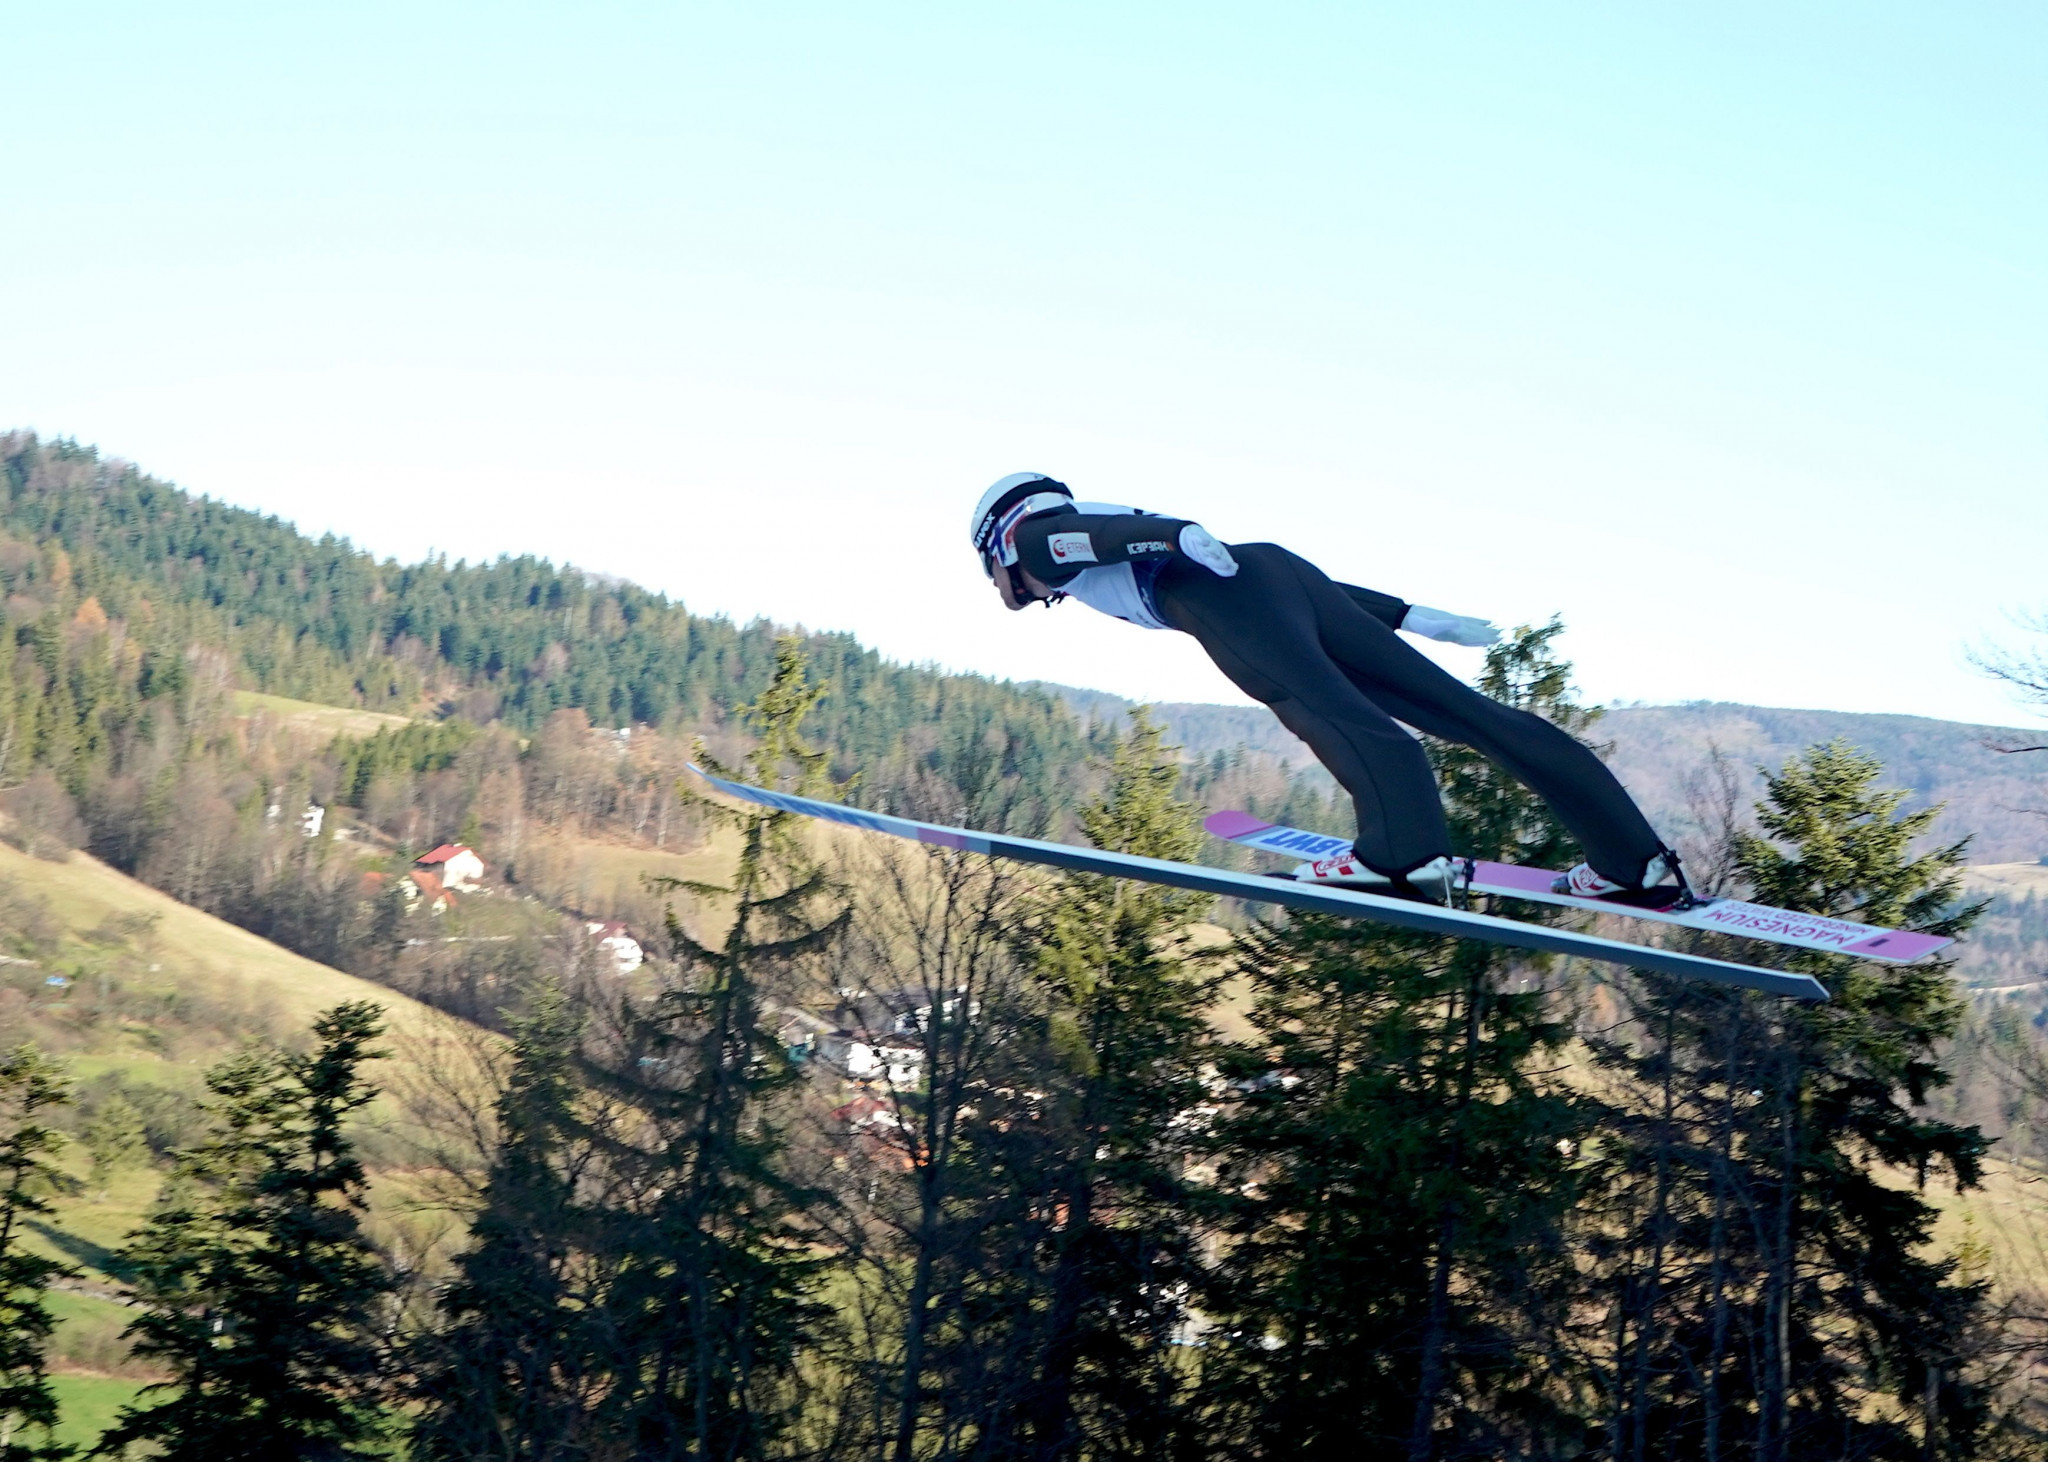 Daniel Andre Tande of Norway triumphed at the first Ski Jumping World Cup last weekend ©Getty Images